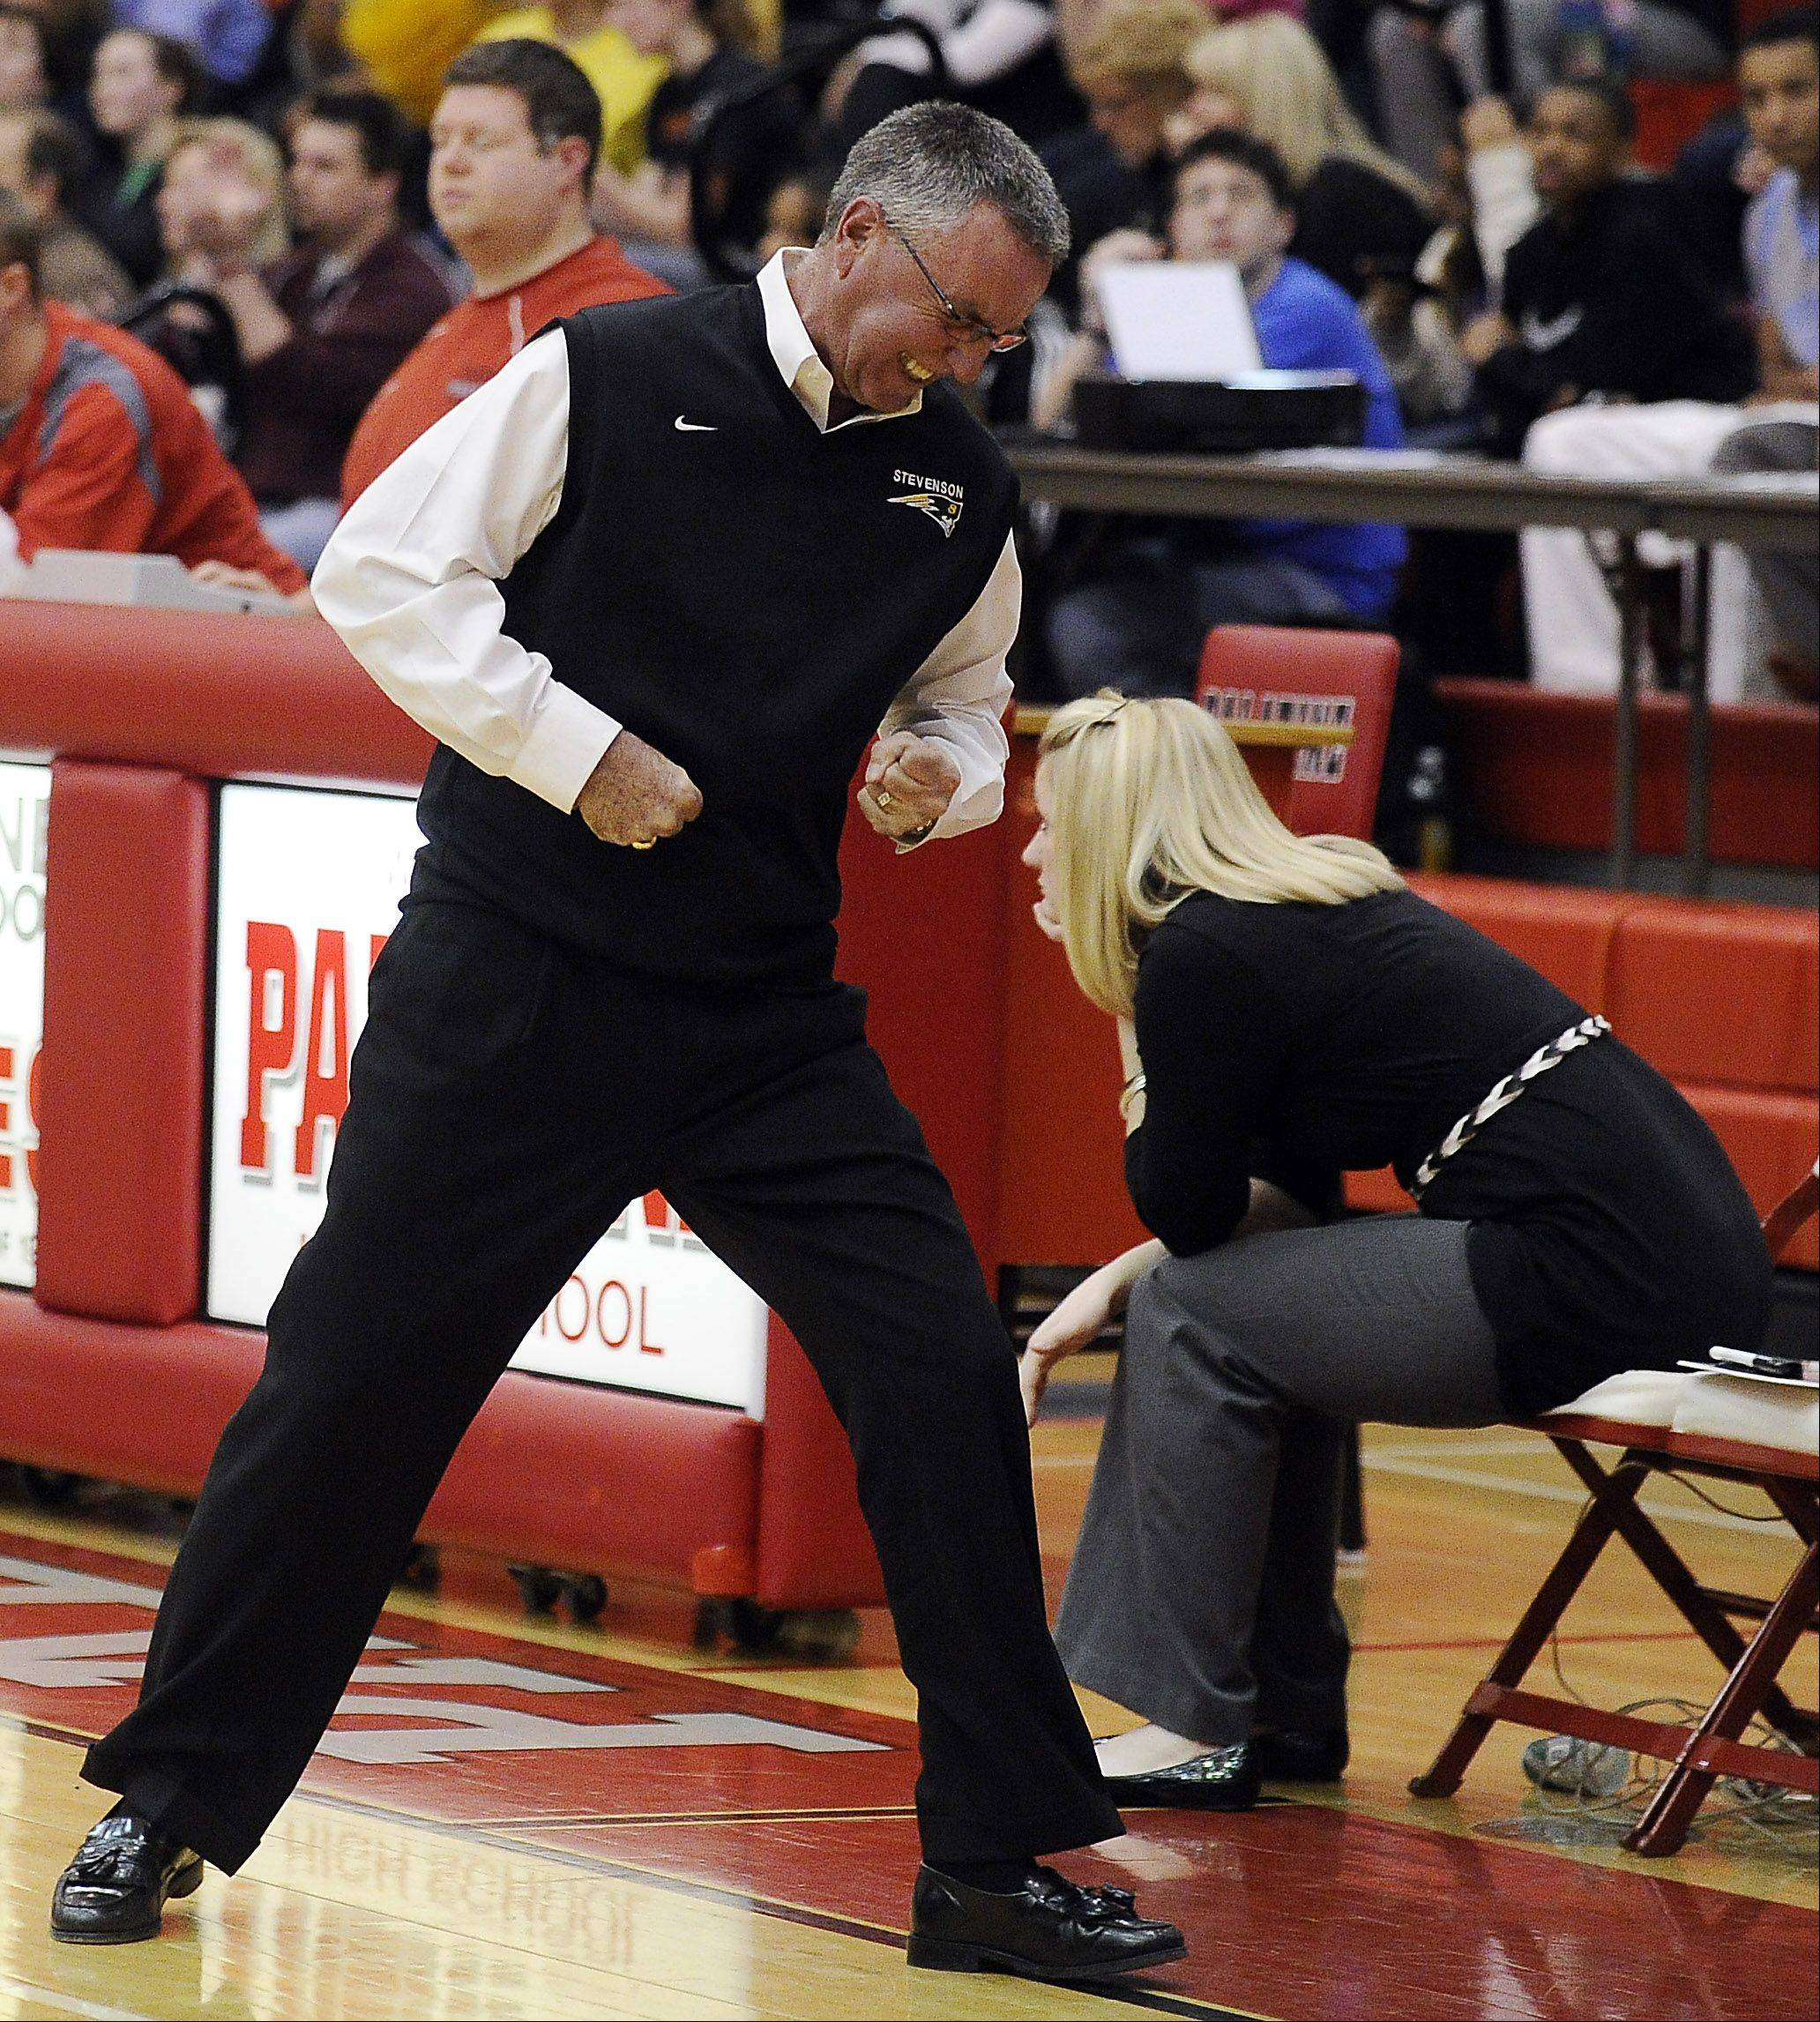 Stevenson coach Tom Dineen shows his frustration on a missed opportunity as his team falls to Zion-Benton's in Monday's sectional basketball game in Palatine.